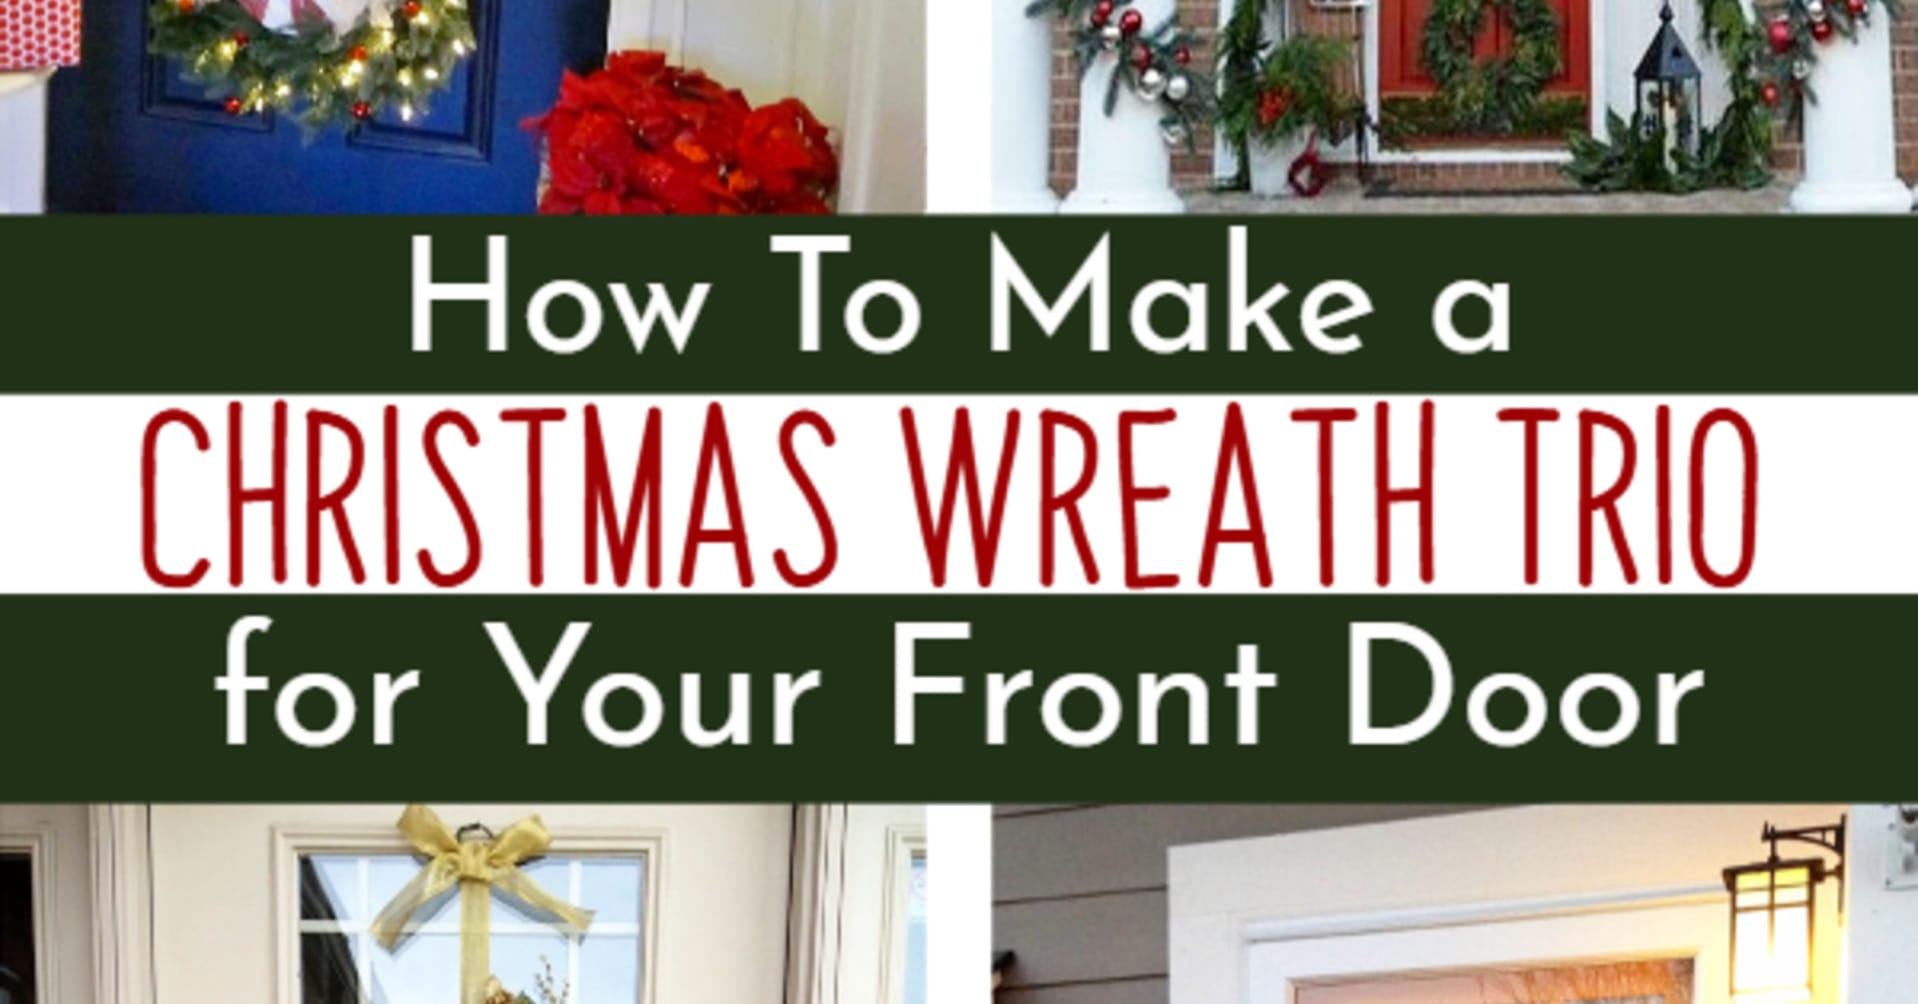 DIY Christmas decor for front porch outside or indoors - how to make a Christmas wreath trio